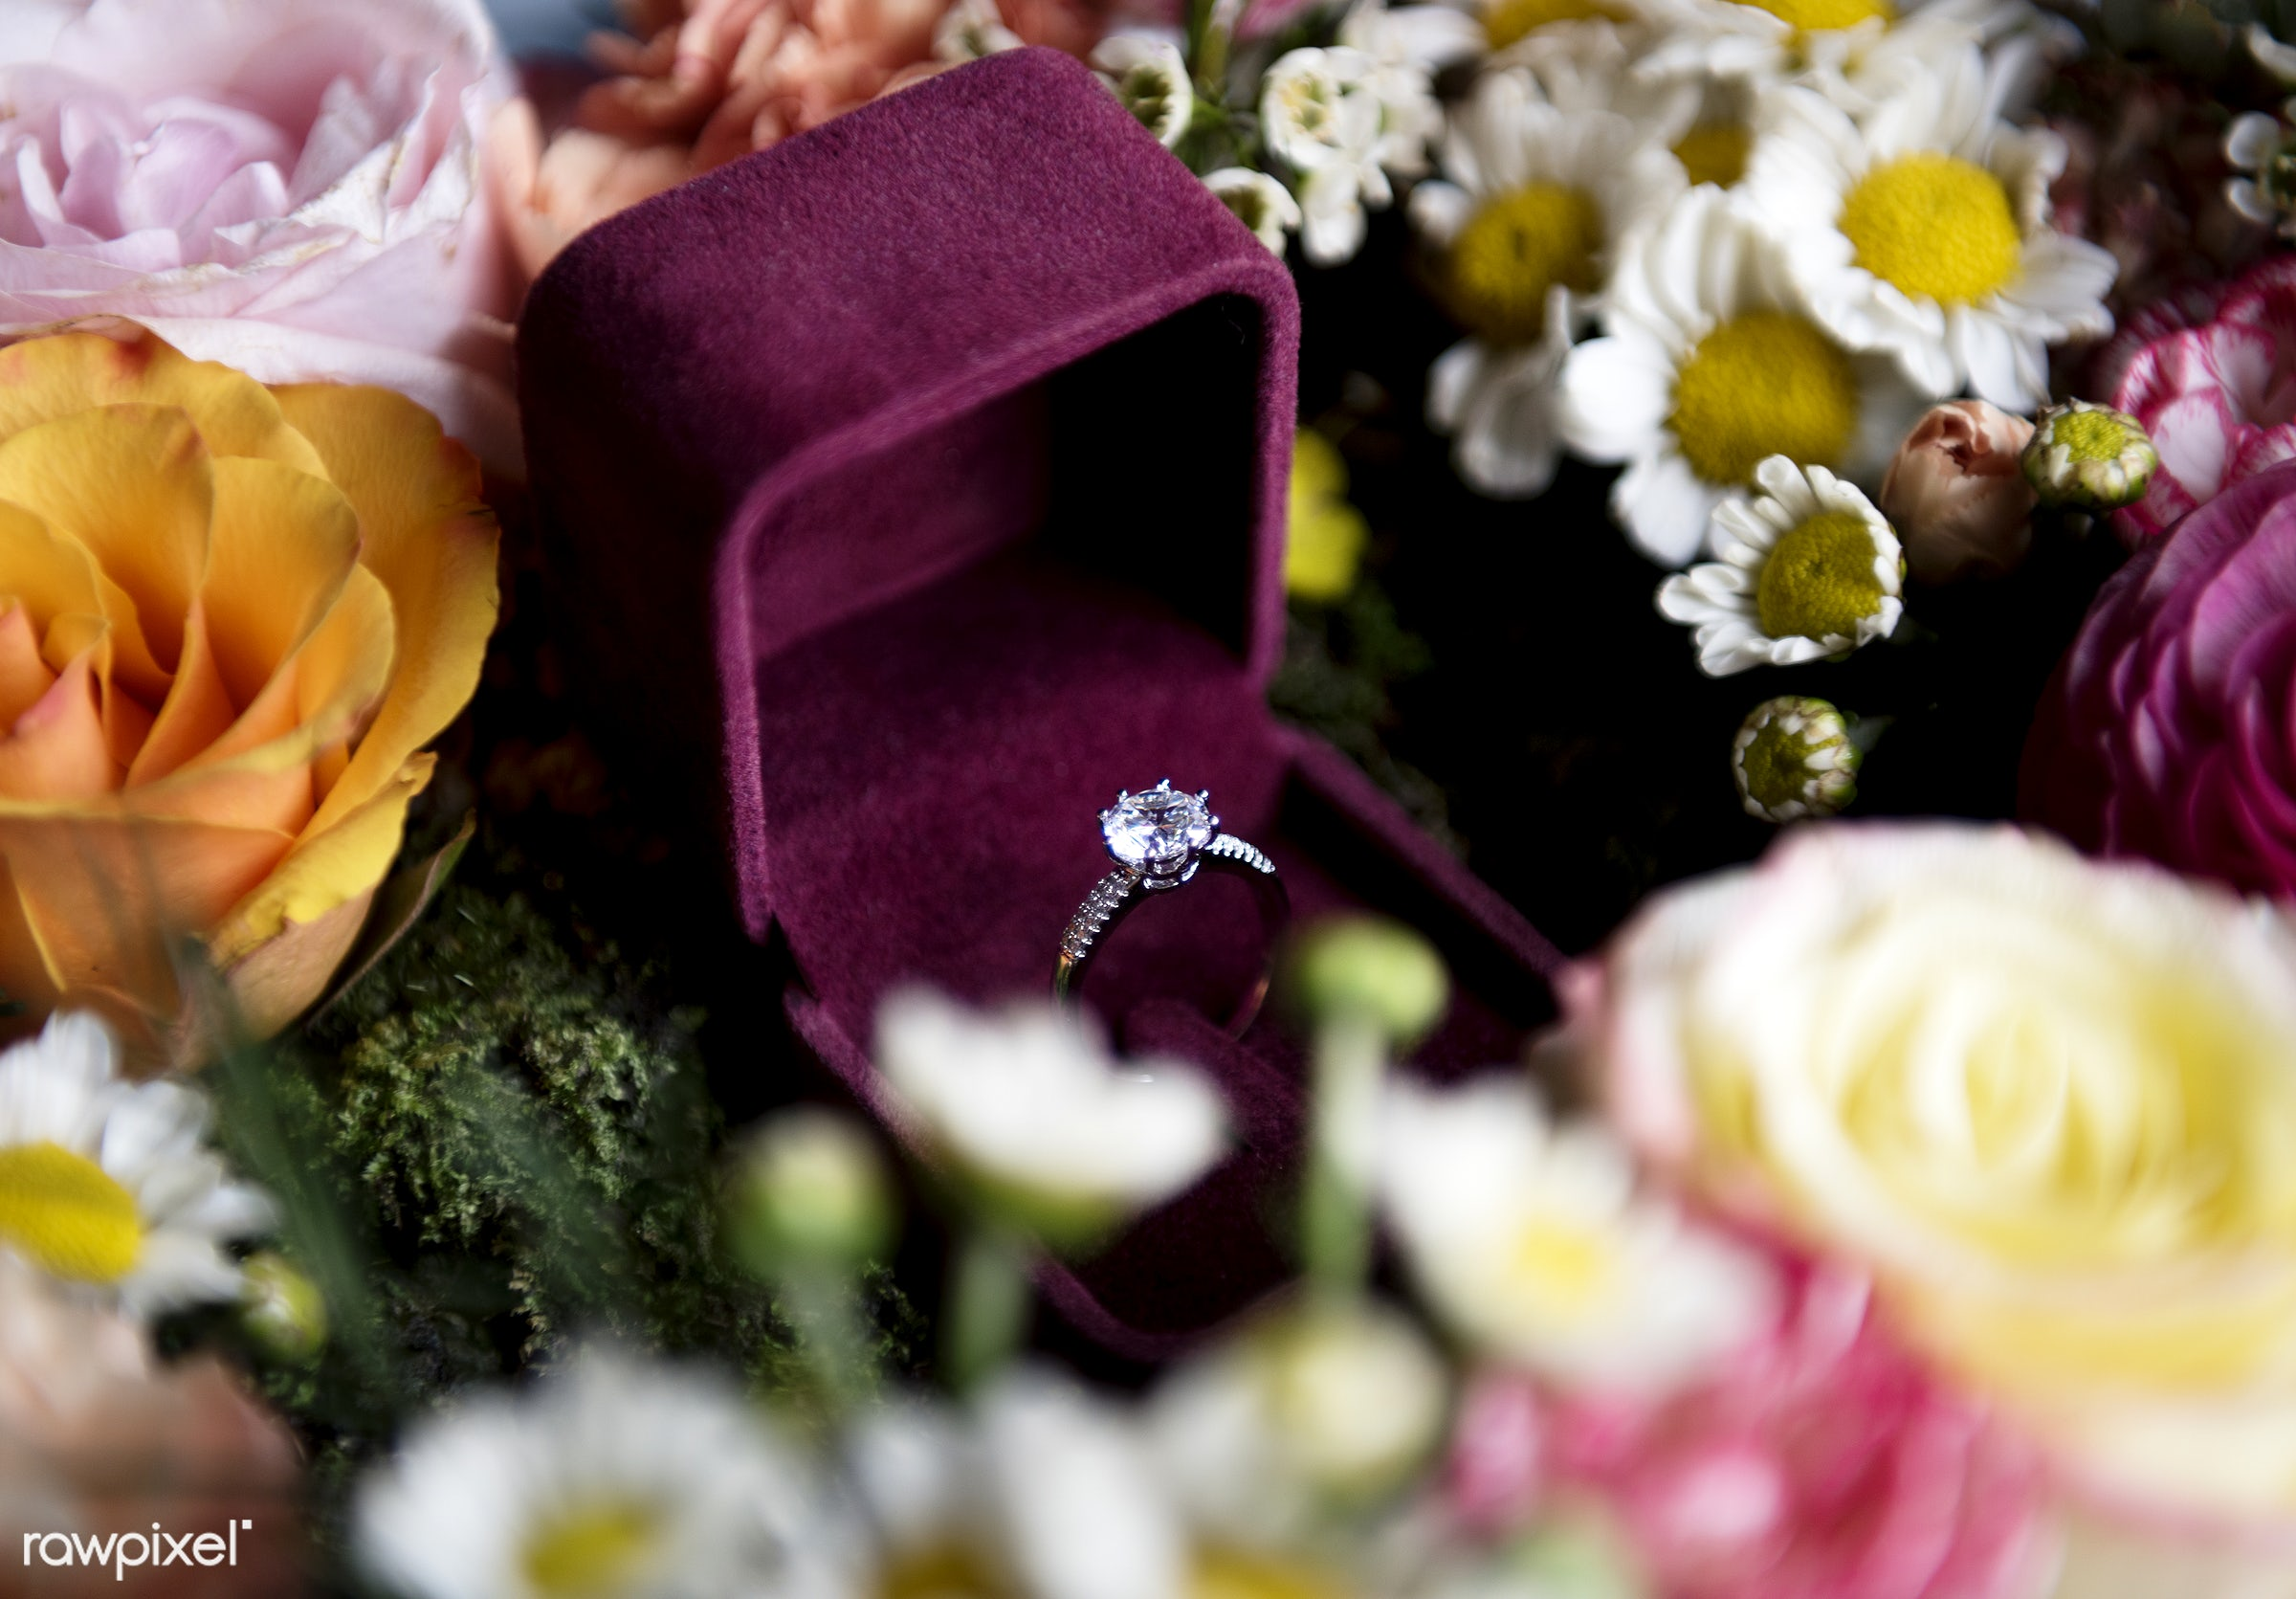 nobody, daisy, jewel, flowers, objects, closeup, ring, decoration, red box, prepare, ceremony, marriage, arrangement,...